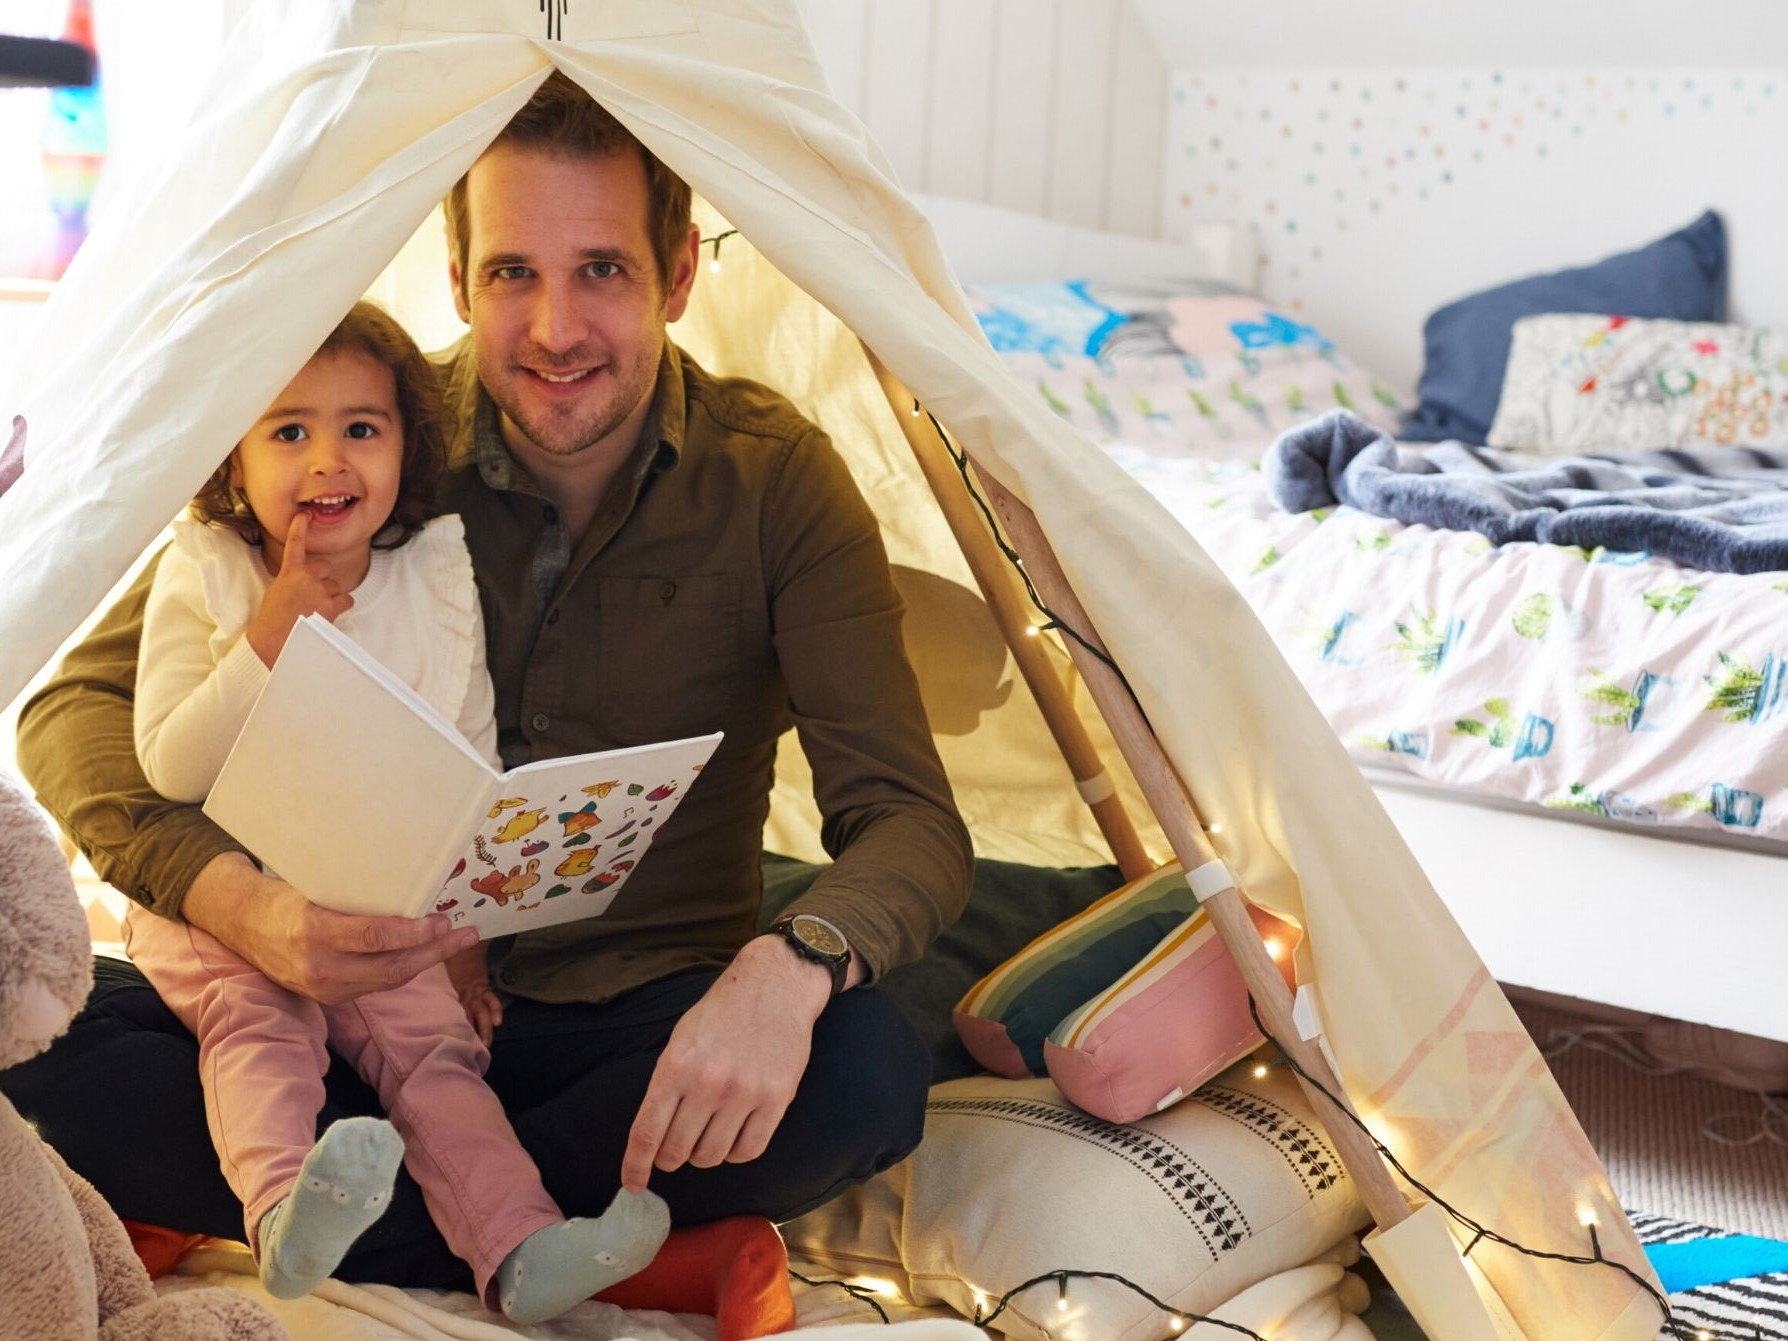 Father and daughter in a homemade fort